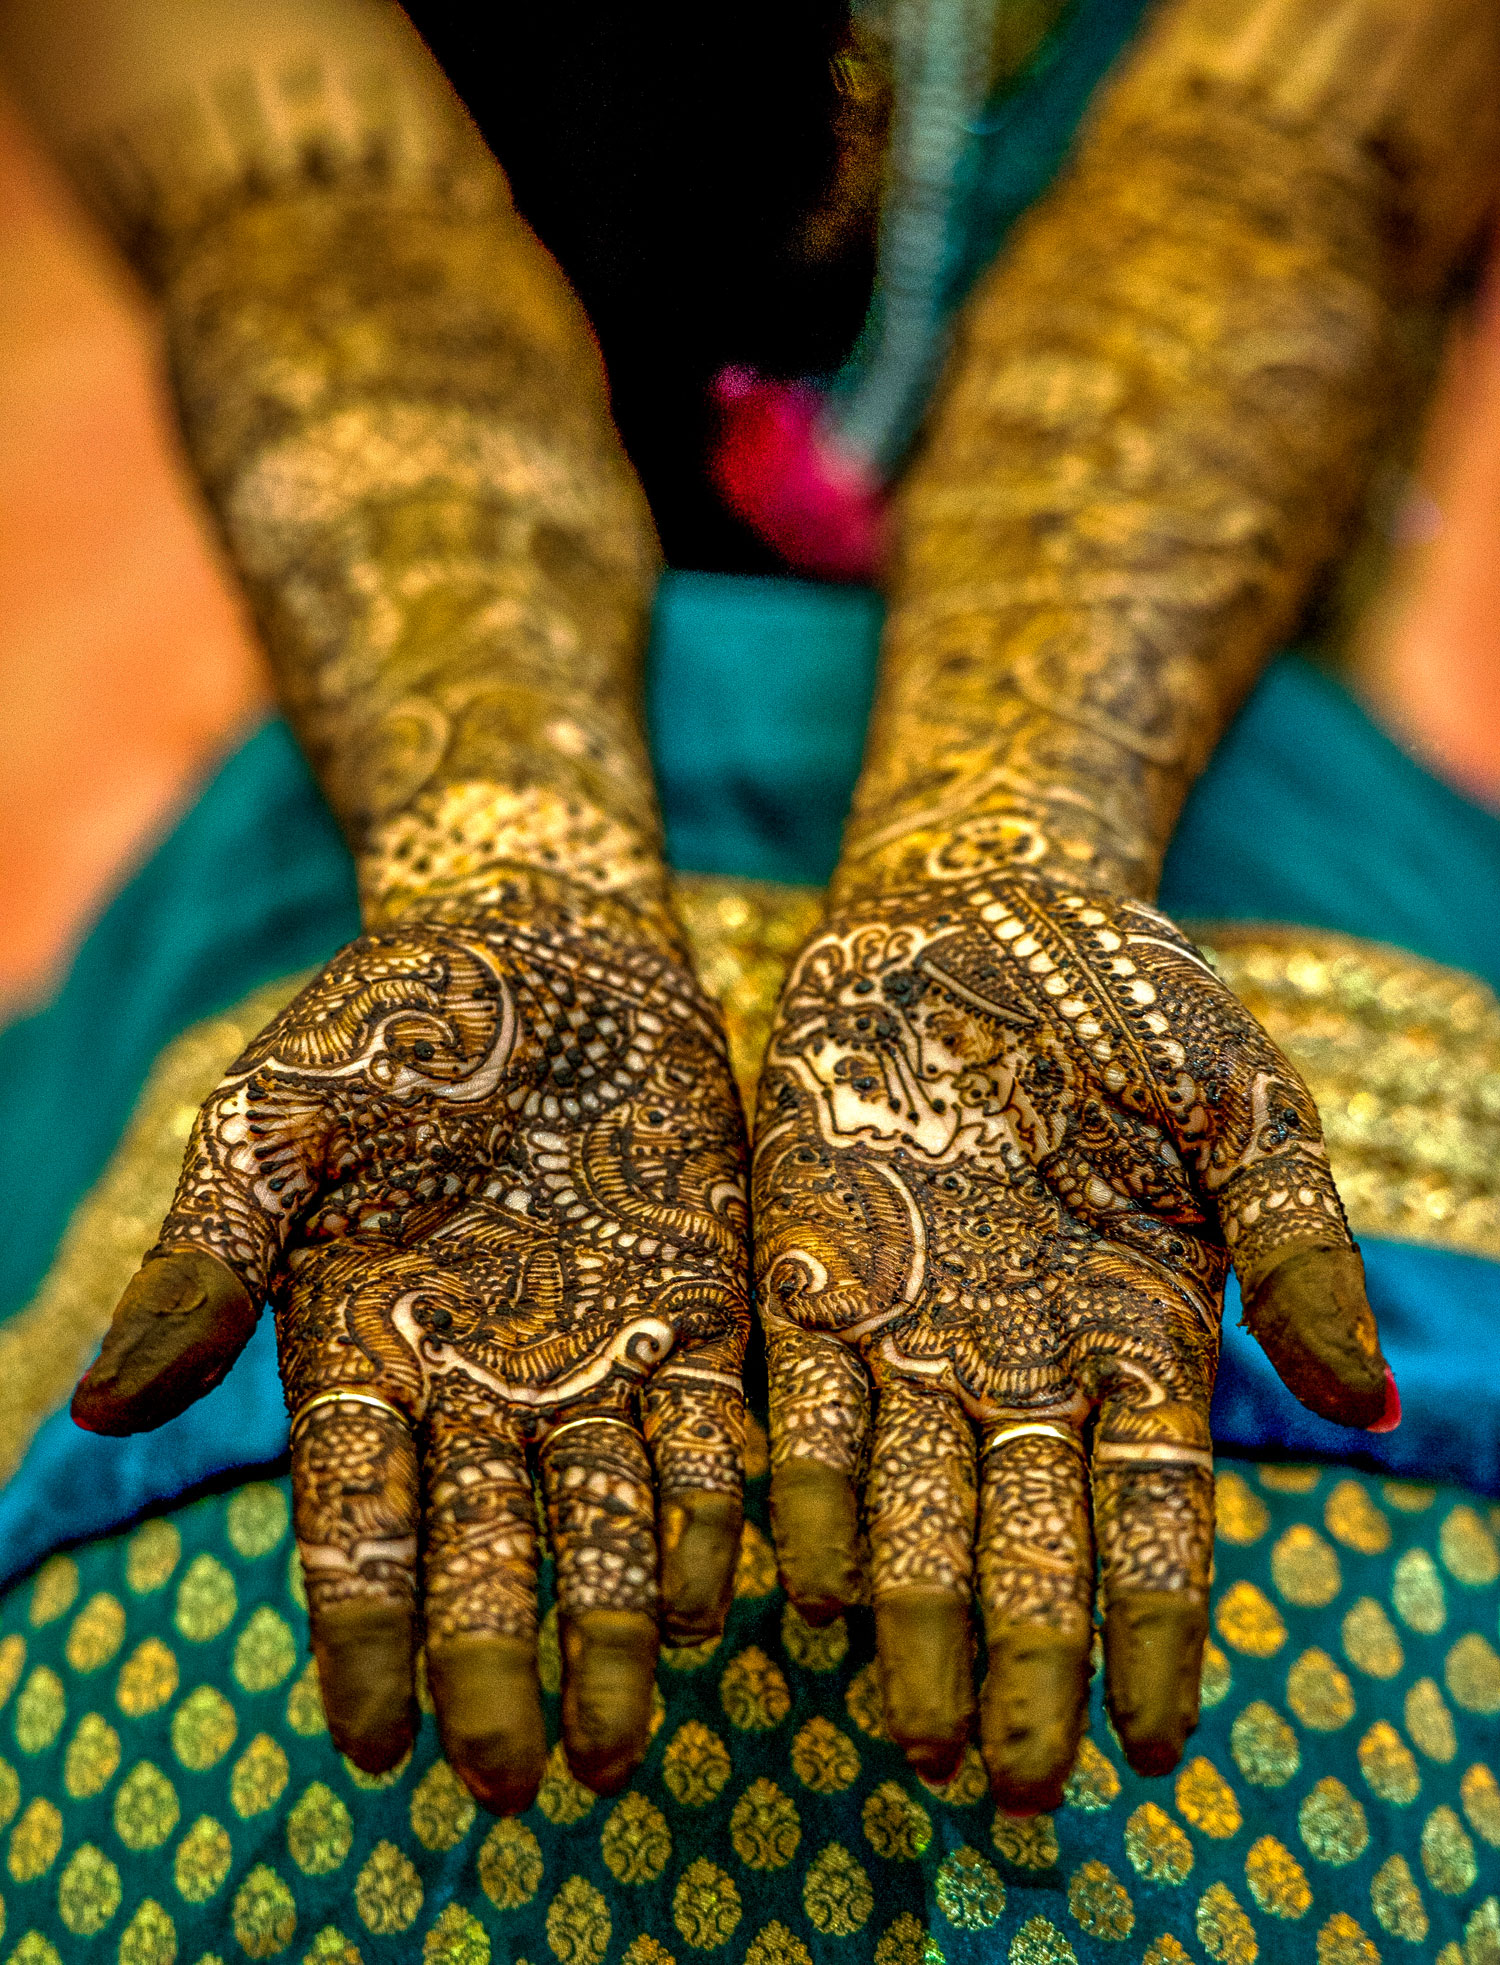 Information about Indian Mehndi Art Henna Tattoo Bridal Mehendi Photos